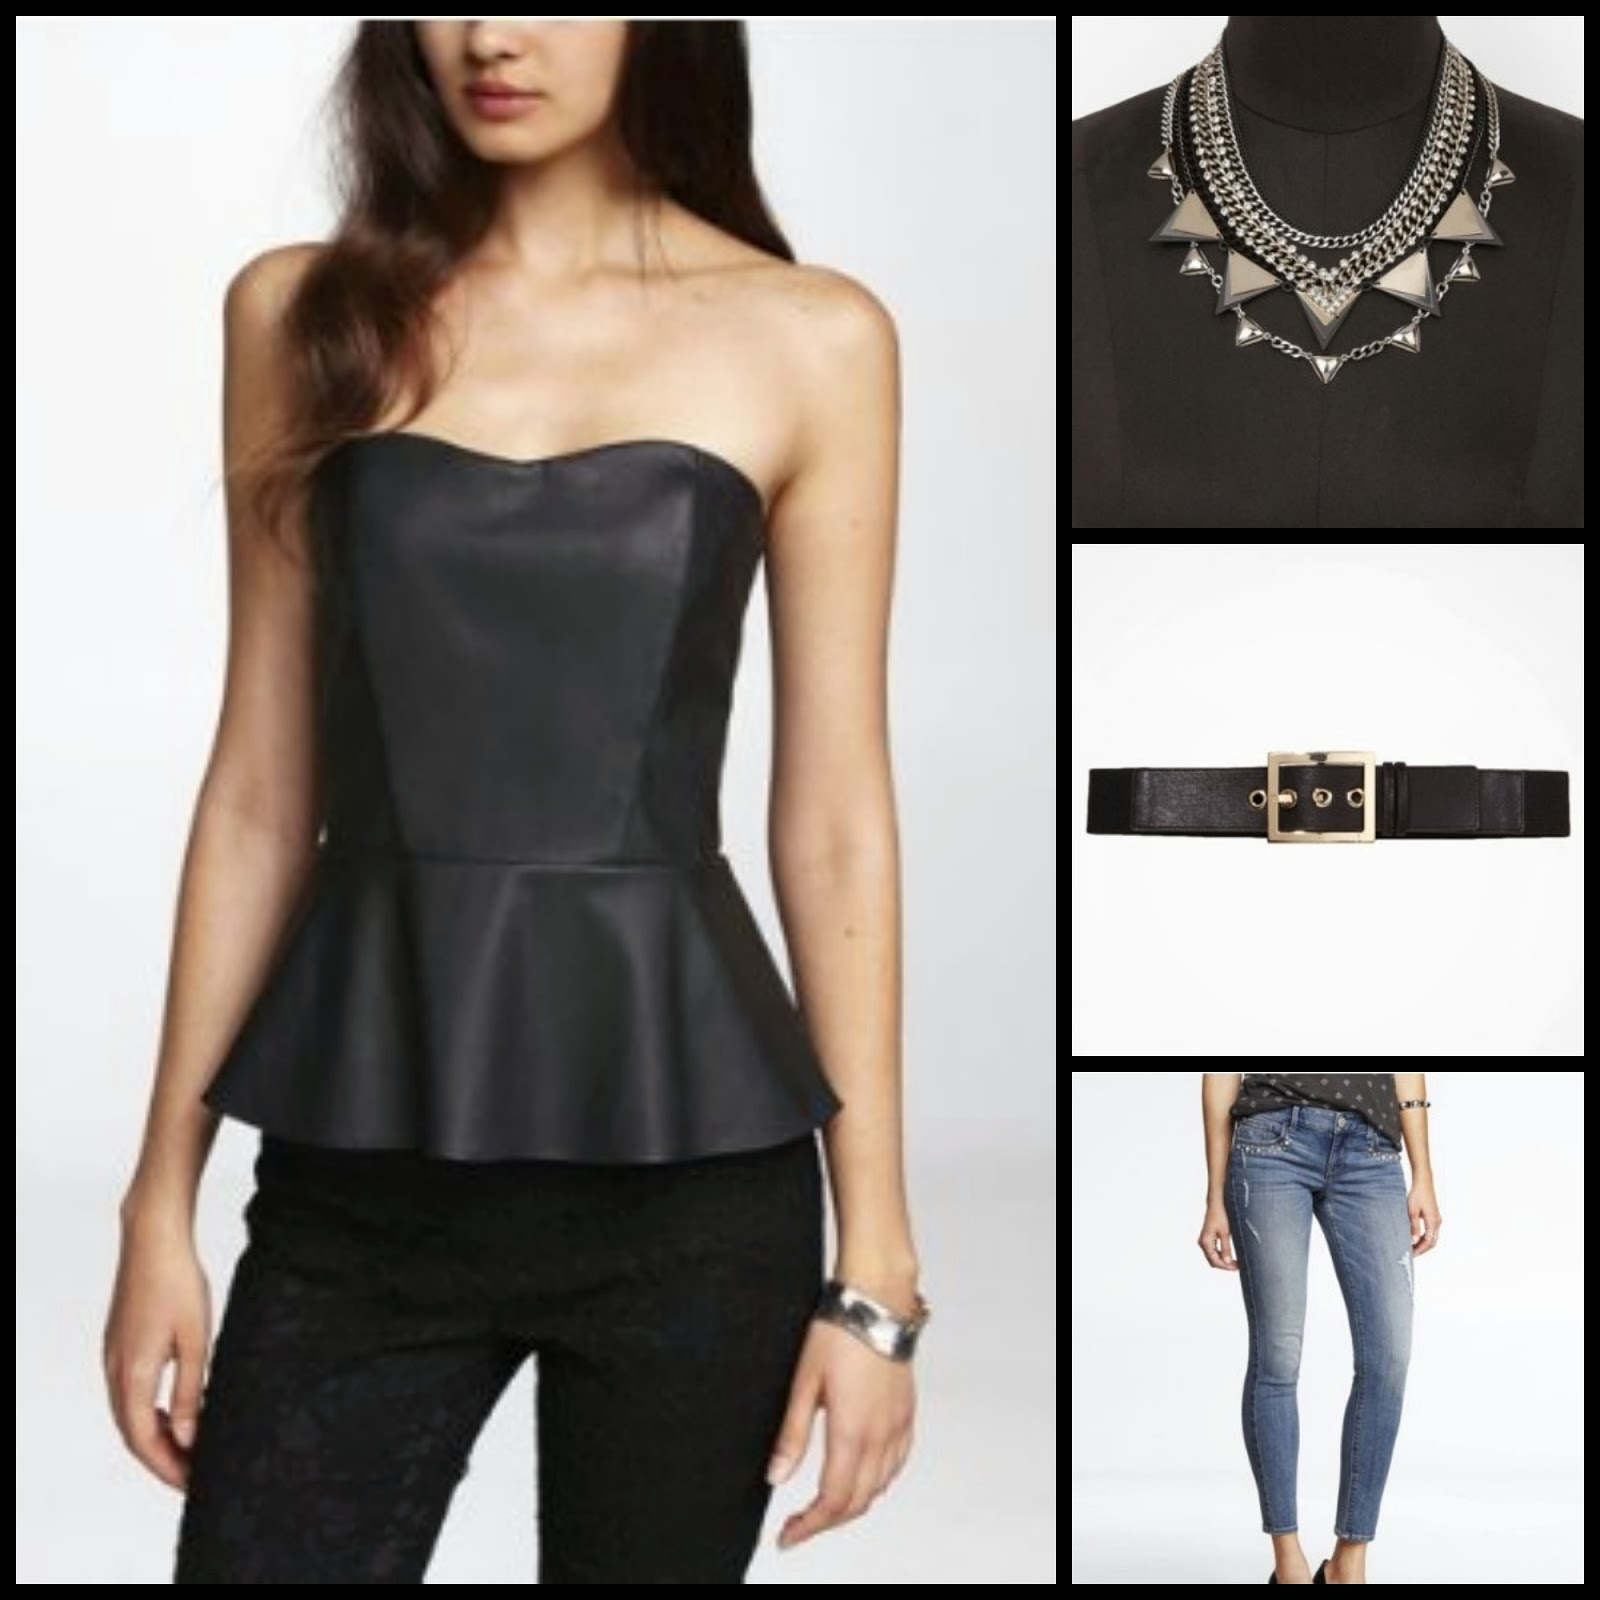 leather peplum top, belt, studded jeans, rhinestone necklace